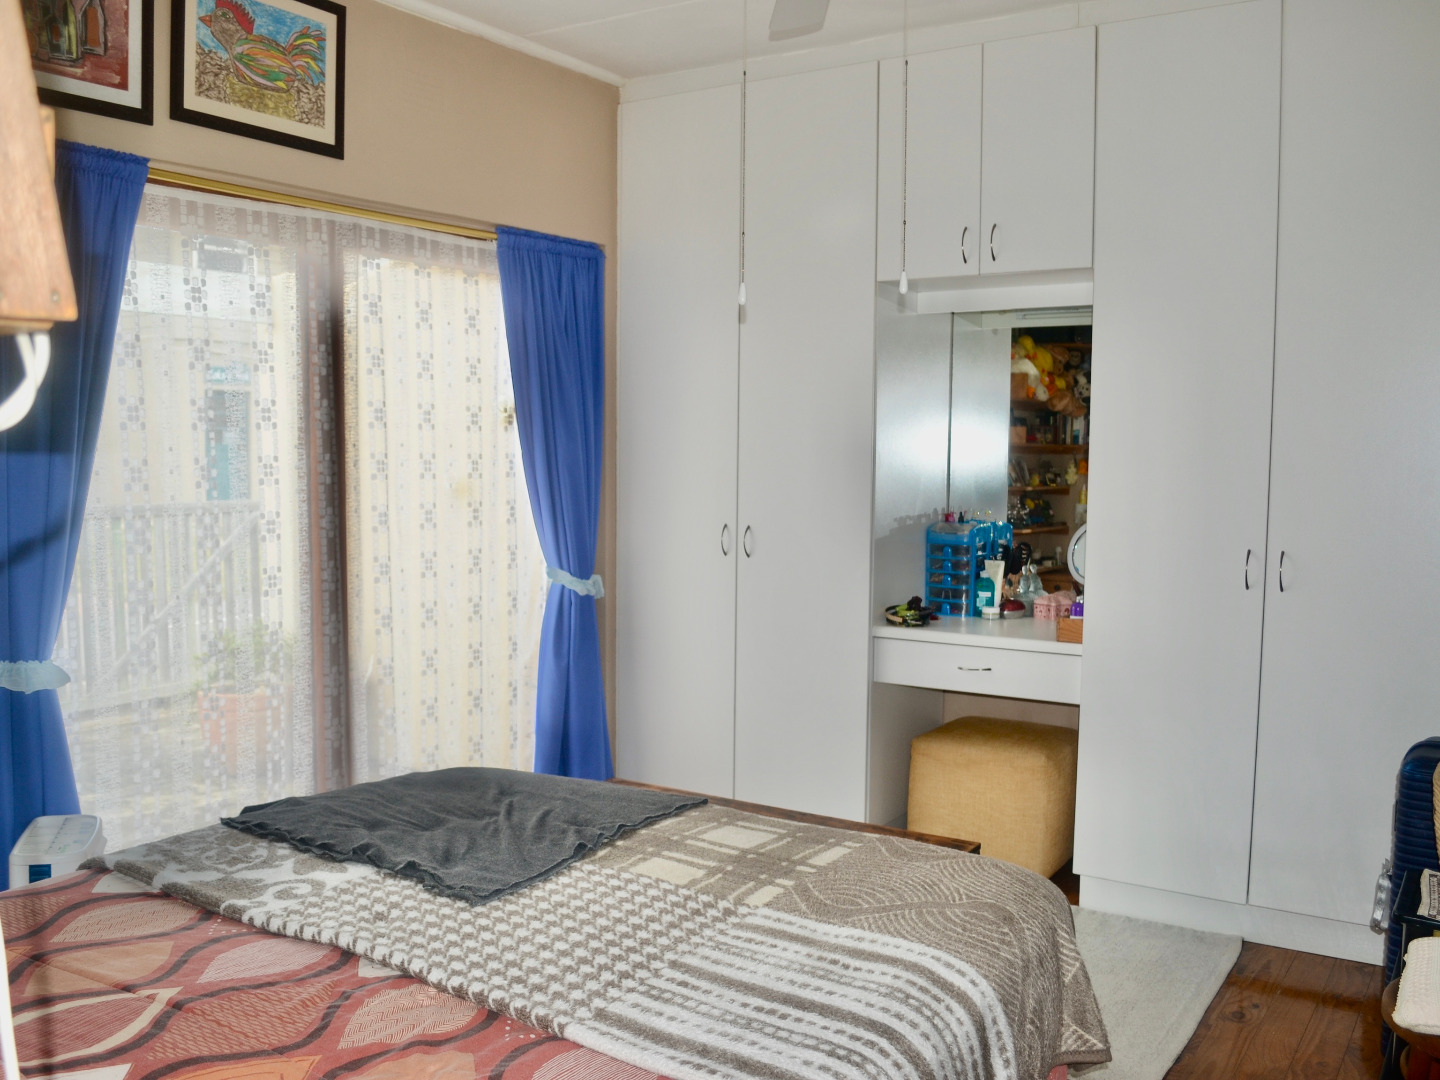 3 Bedroom House For Sale in Buffalo Bay